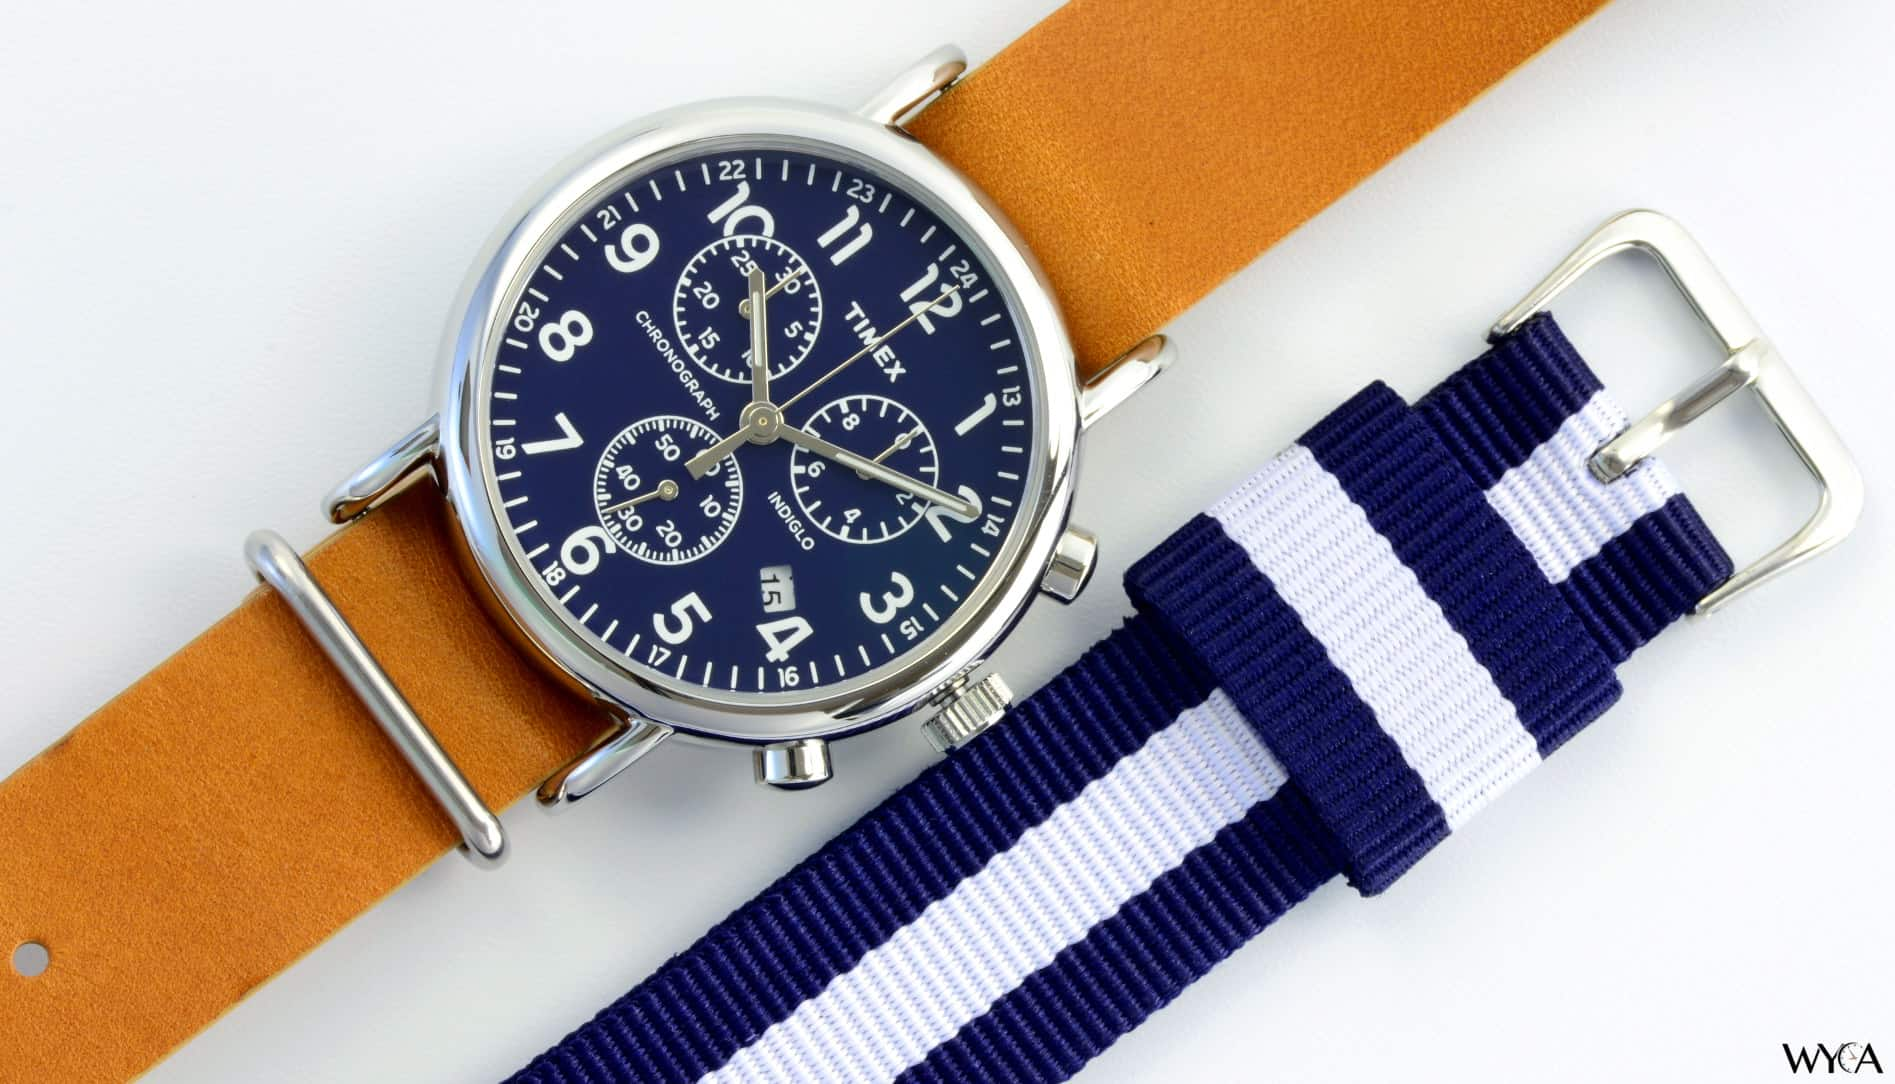 timex weekender chronograph review watch reviews wyca rh watchesyoucanafford com Clip Art User Guide User Guide Template